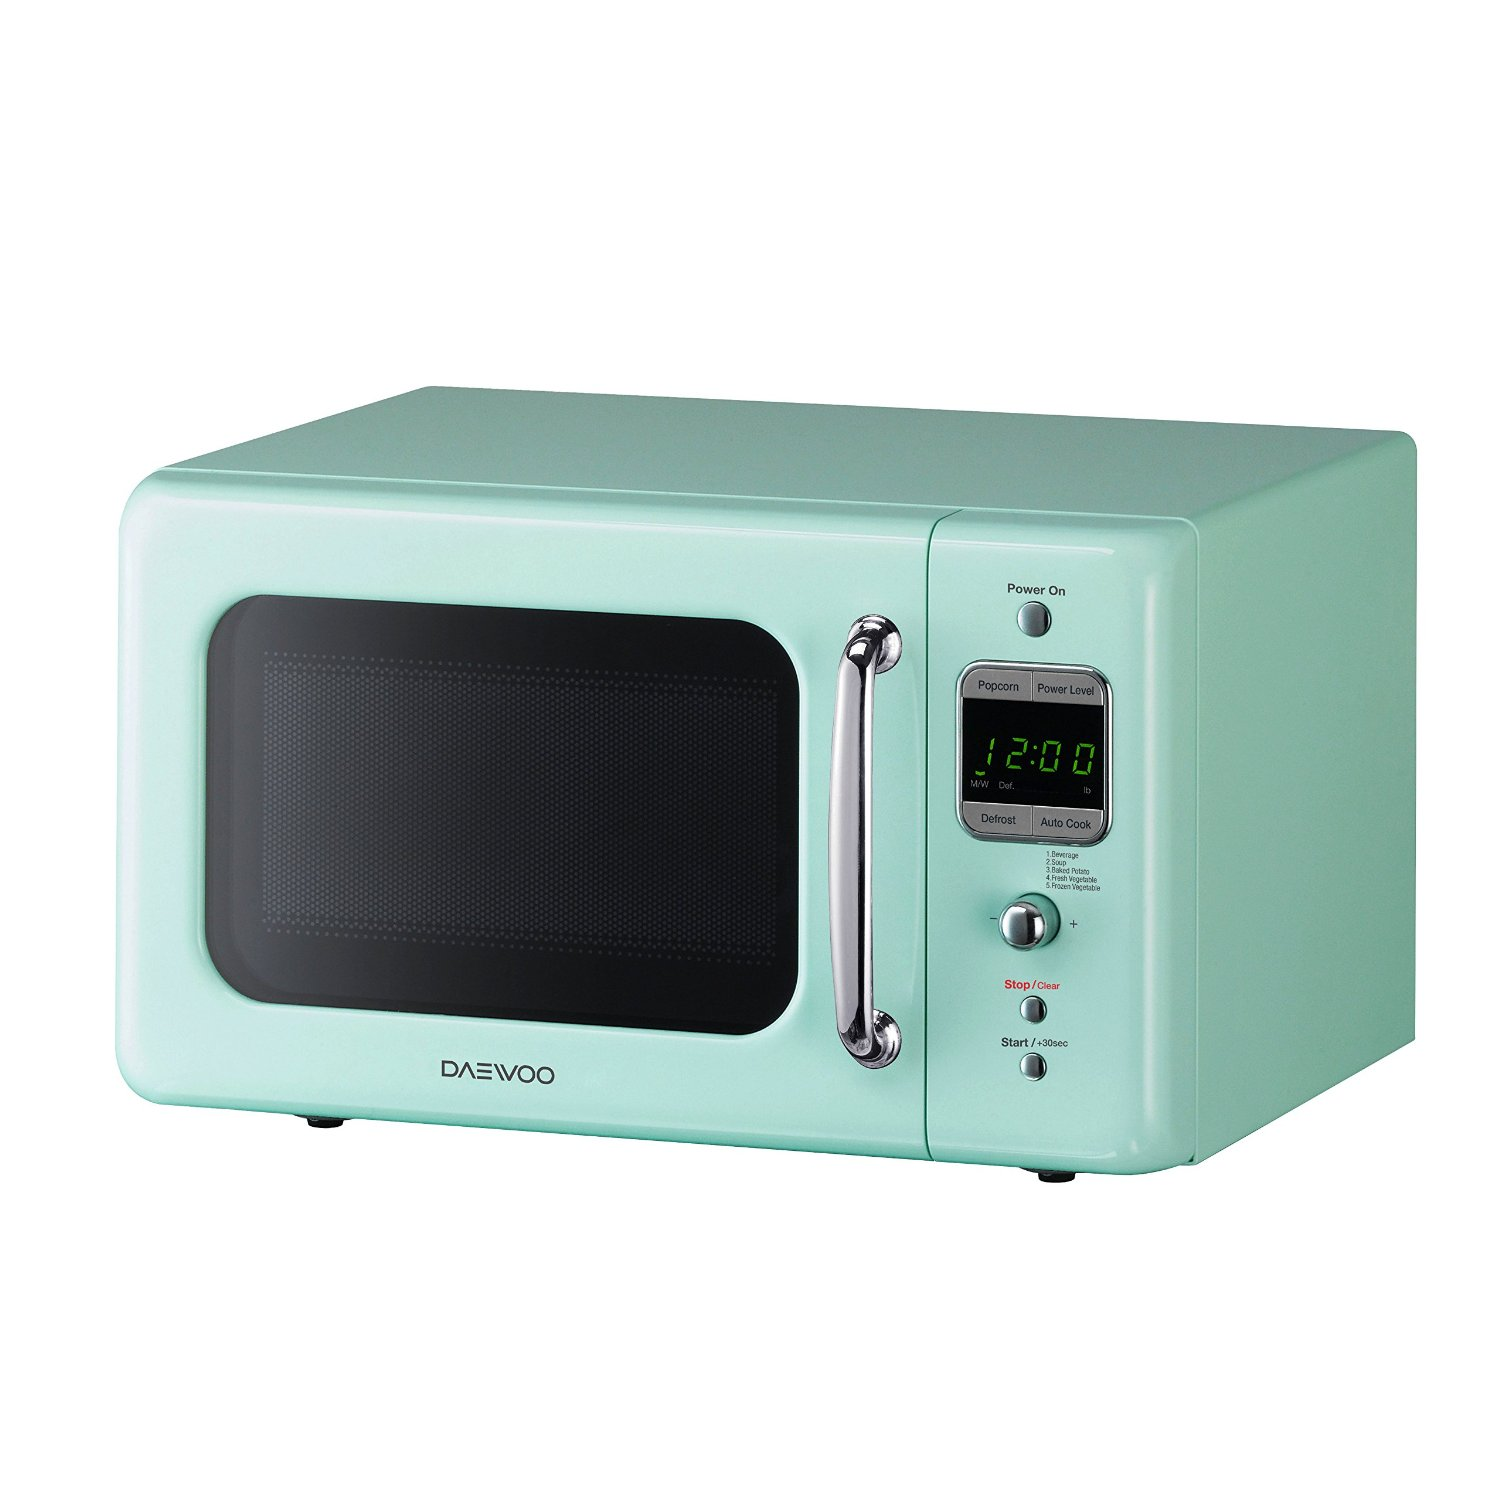 Daewoo Retro Mint Green Microwave Oven Small 0.7 Cu Ft